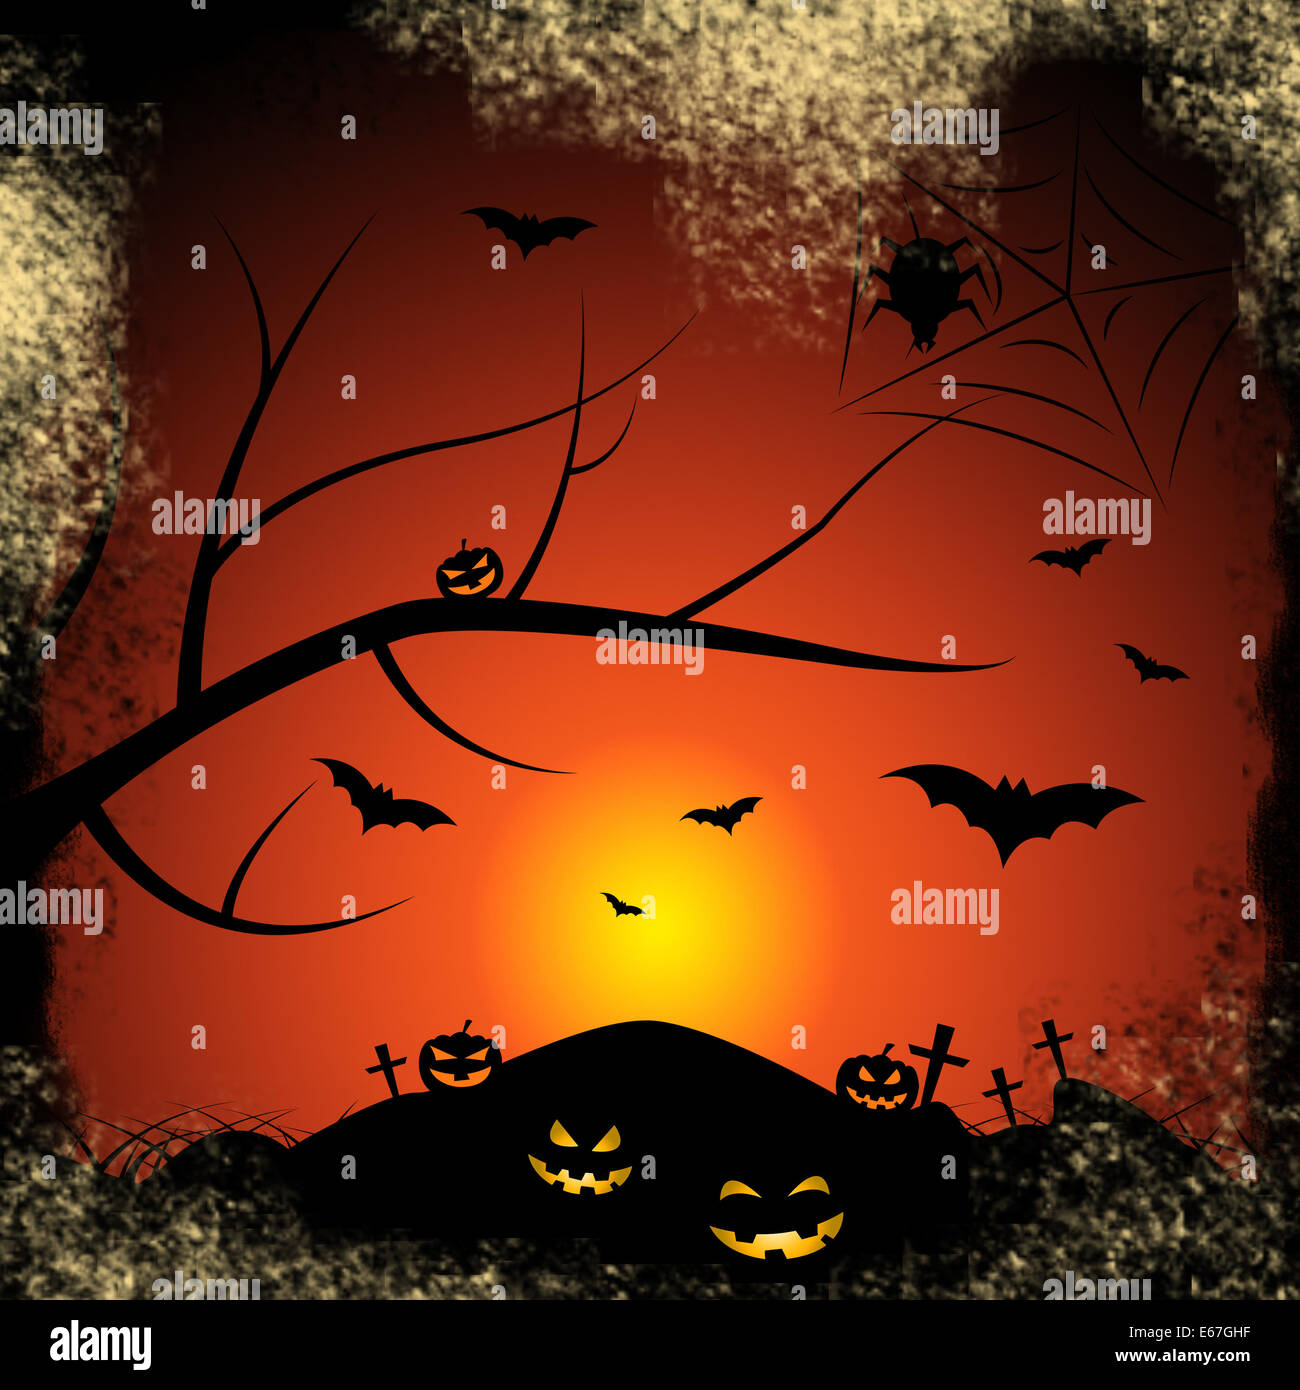 Halloween Bats Meaning Trick Or Treat And Tree Trunk Stock Photo ...